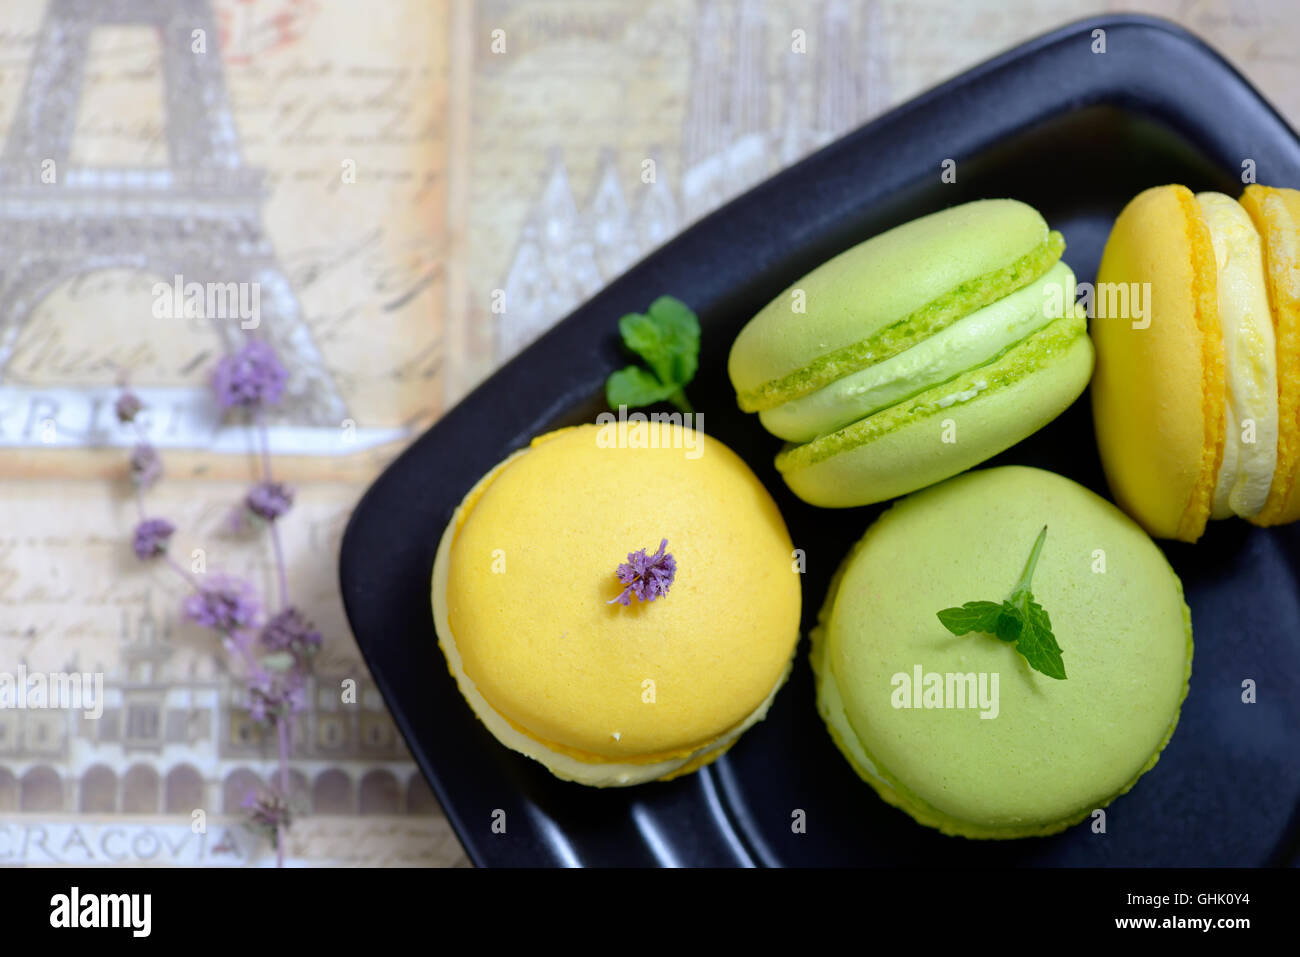 Lemon and mint flavor french macarons on black plate - Stock Image